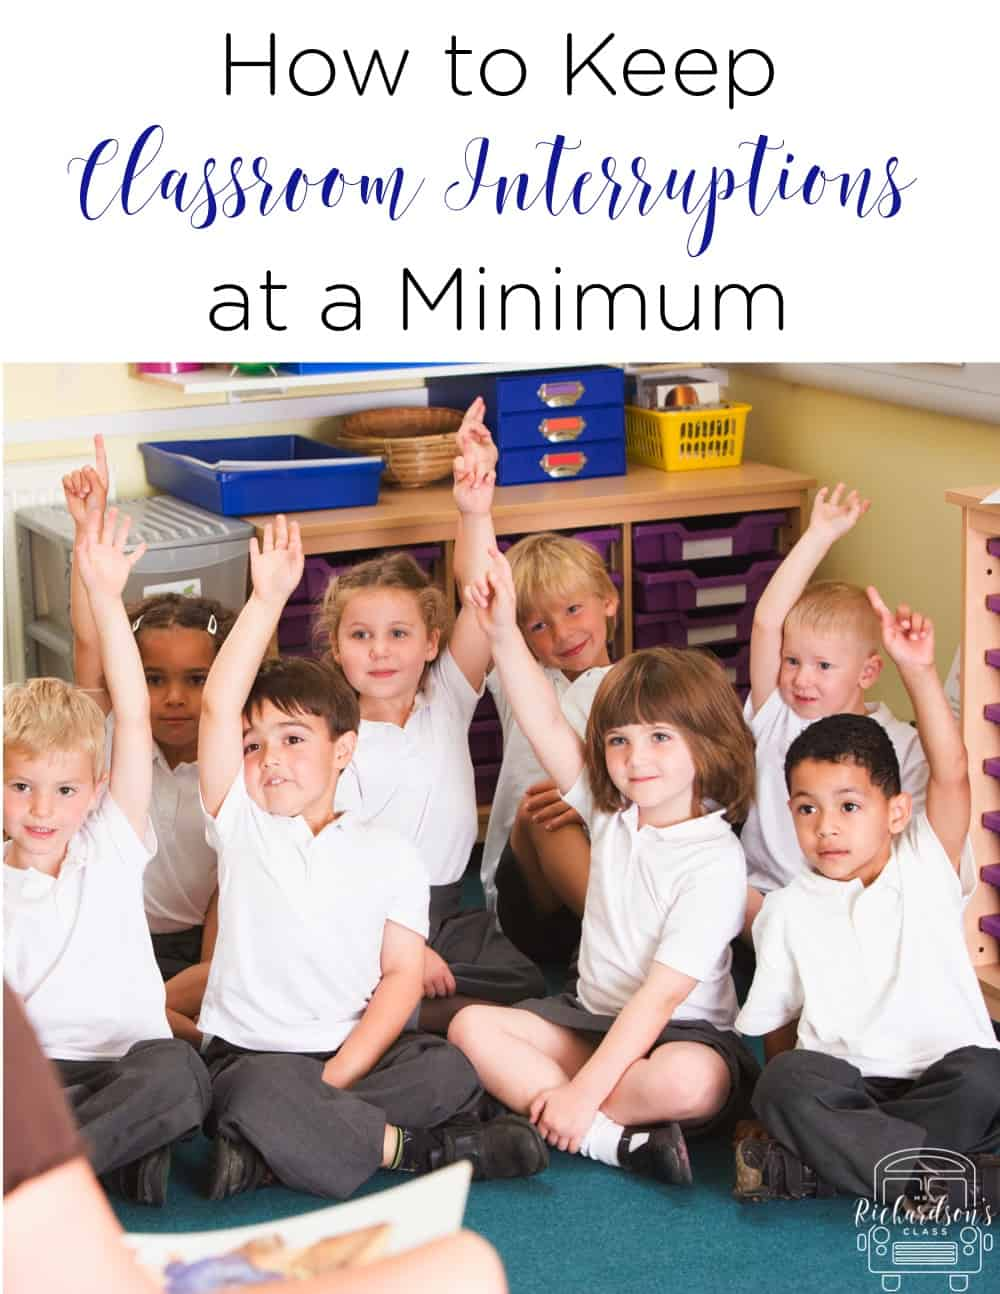 Keep classroom interruptions at a minimum with this 1 simple trick! It's memorable for the students and they love that it's a little silly! #classroommanagement #elementary #behaviormanagement #classroominteruptions